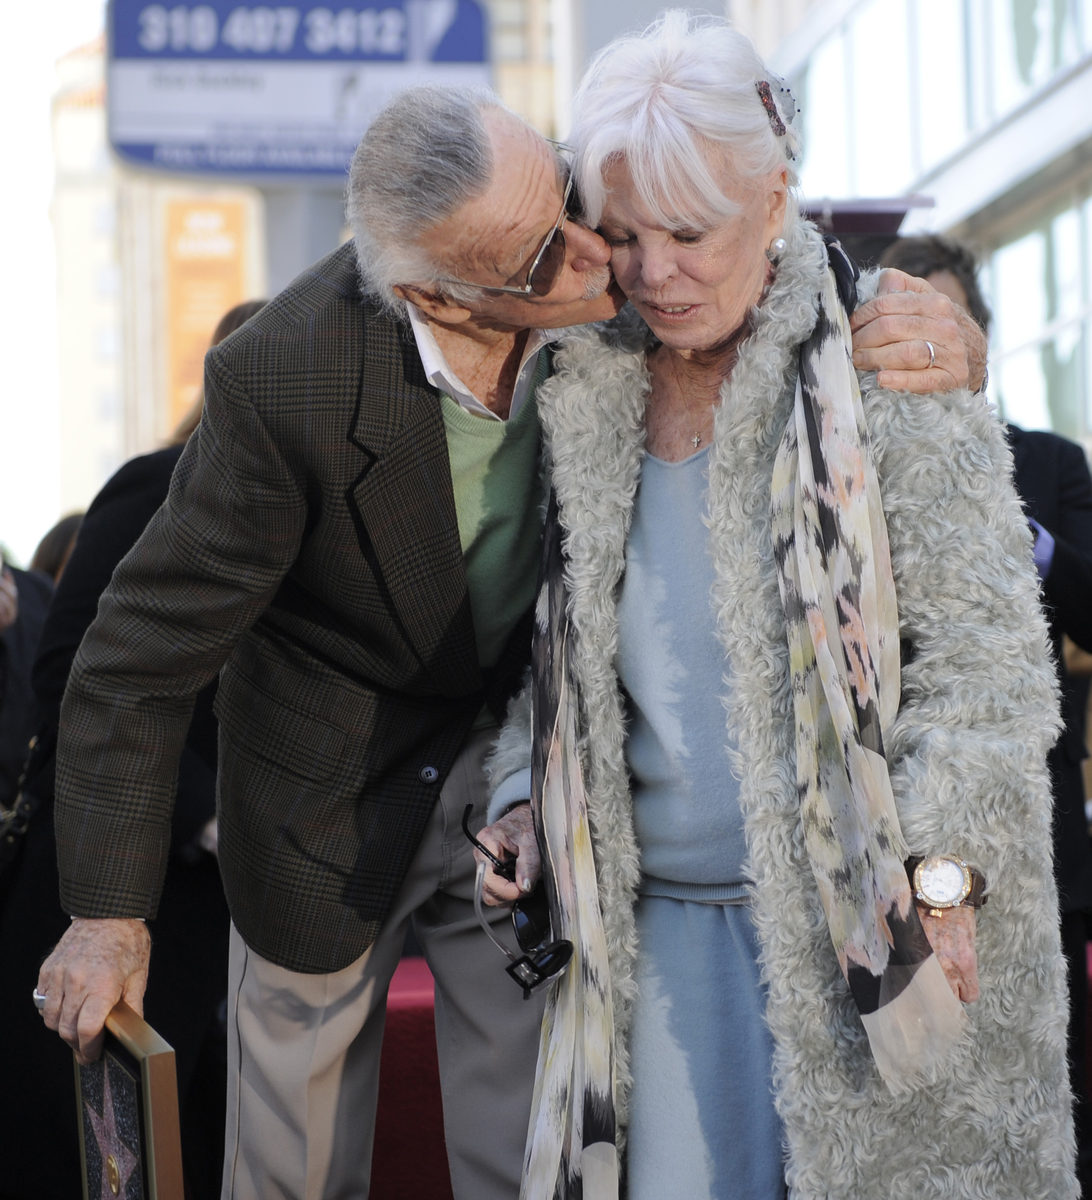 Lee gives his wife, Joan, a kiss after he received a star on the Hollywood Walk of Fame, Jan. 4, 2011. Joan Lee died in 2017.